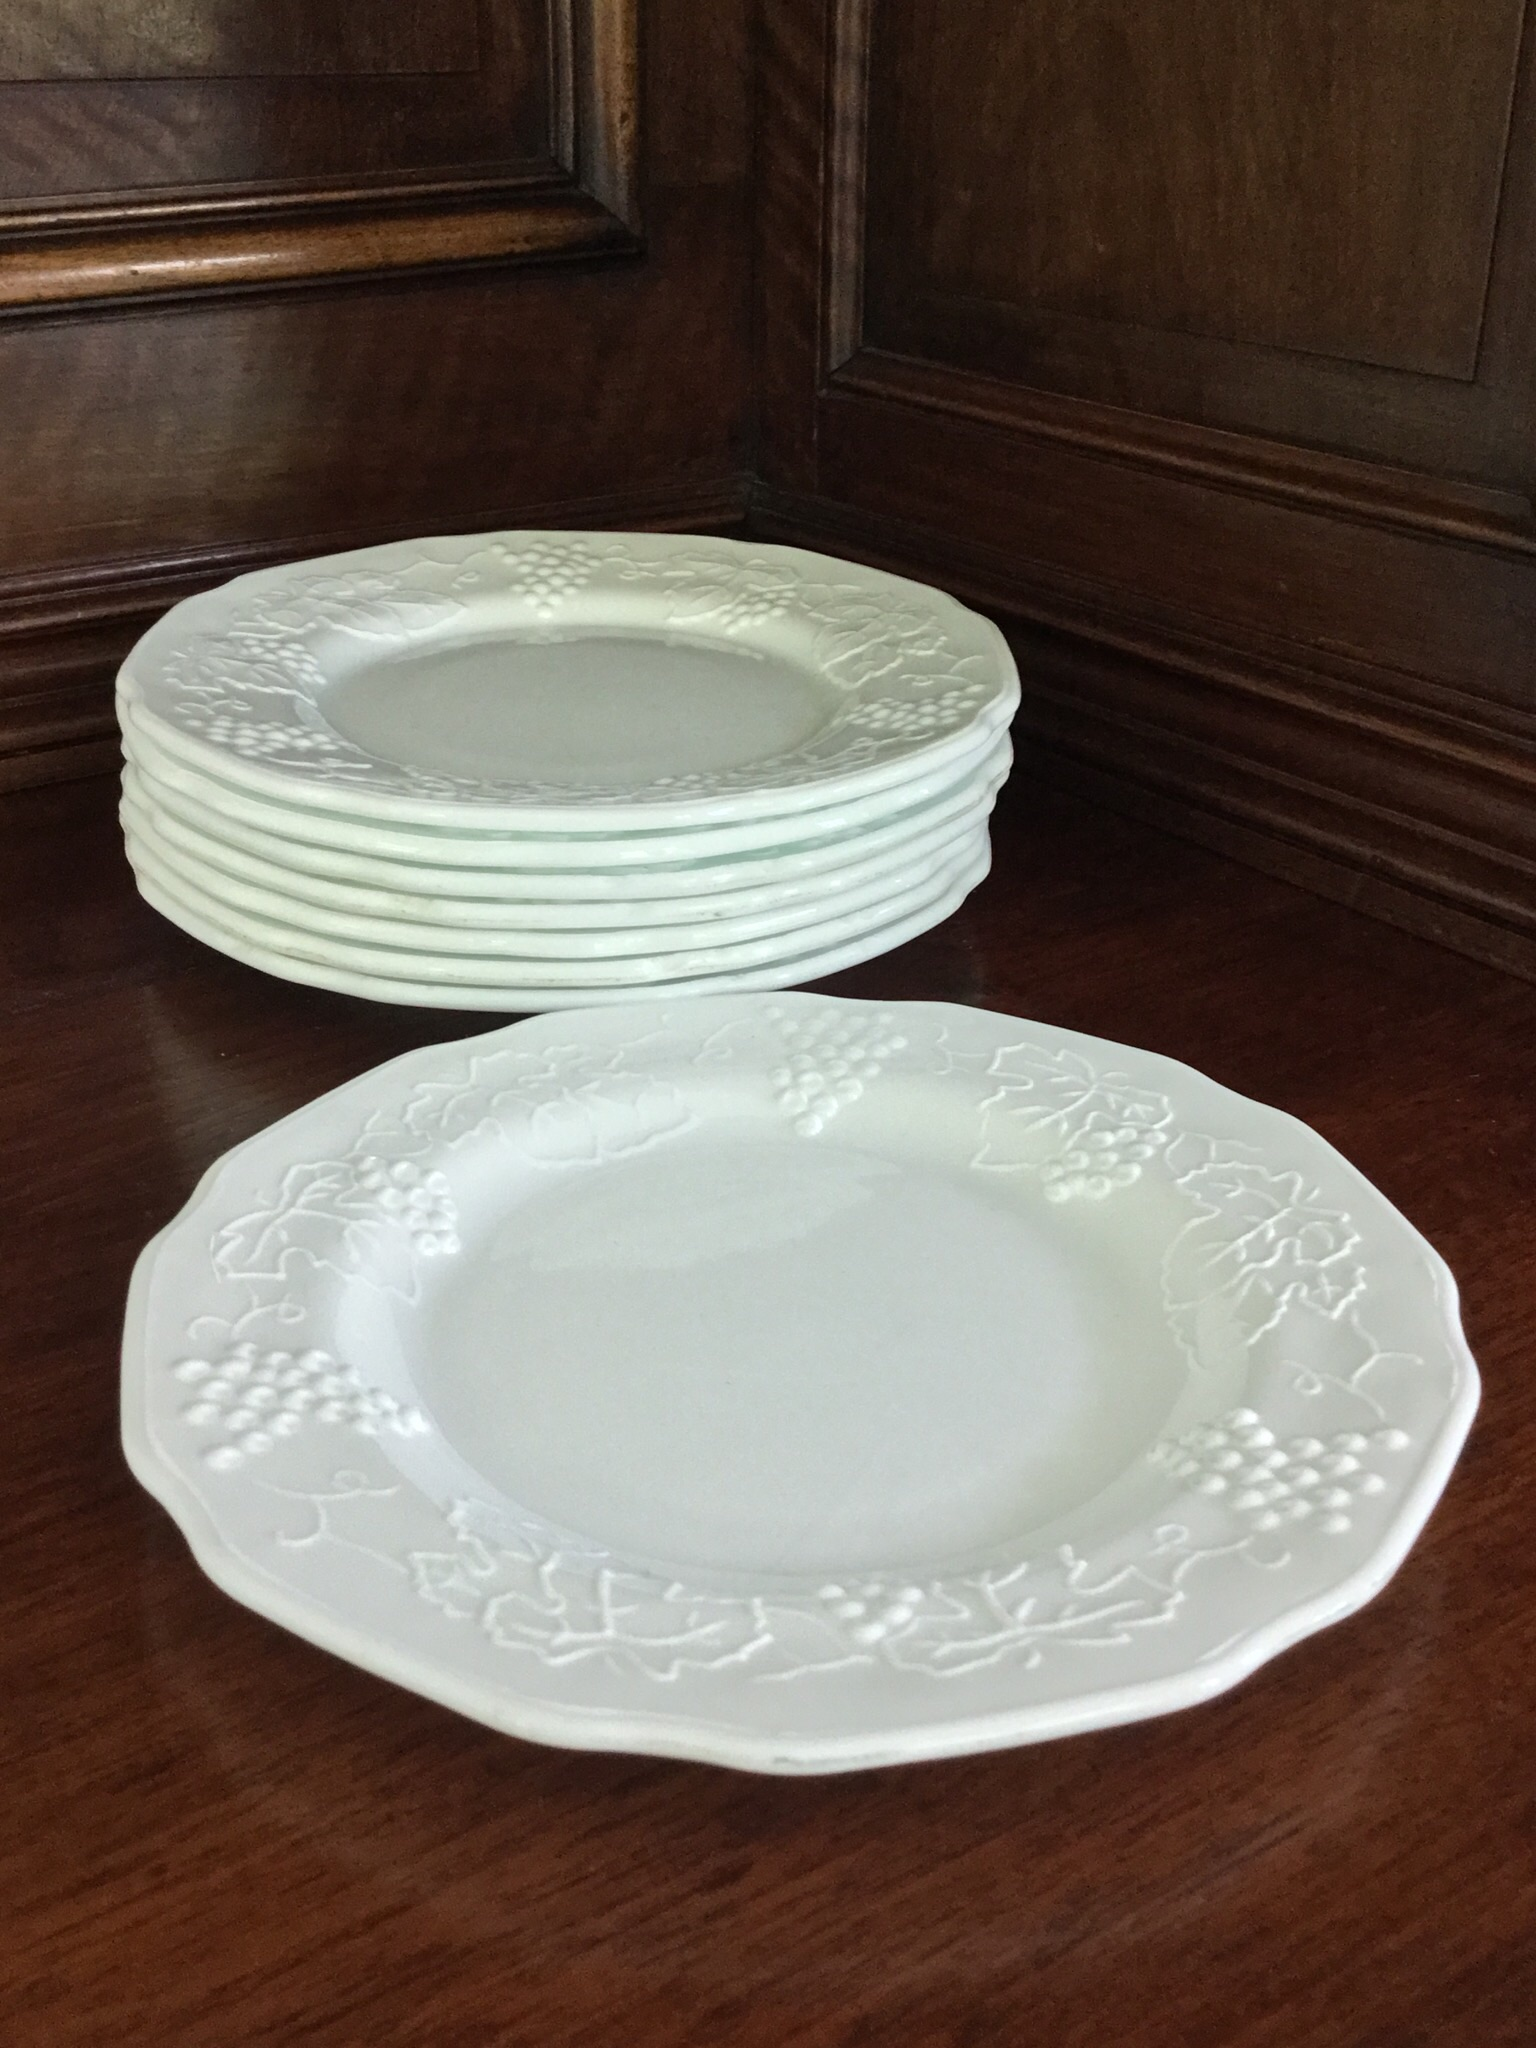 Milk Glass Grape Pattern Salad Plates Set of 8. Milk Glass Grape Pattern Salad Plates Set Of 8 & Appealing Grape Dinnerware Set Images - Best Image Engine ...